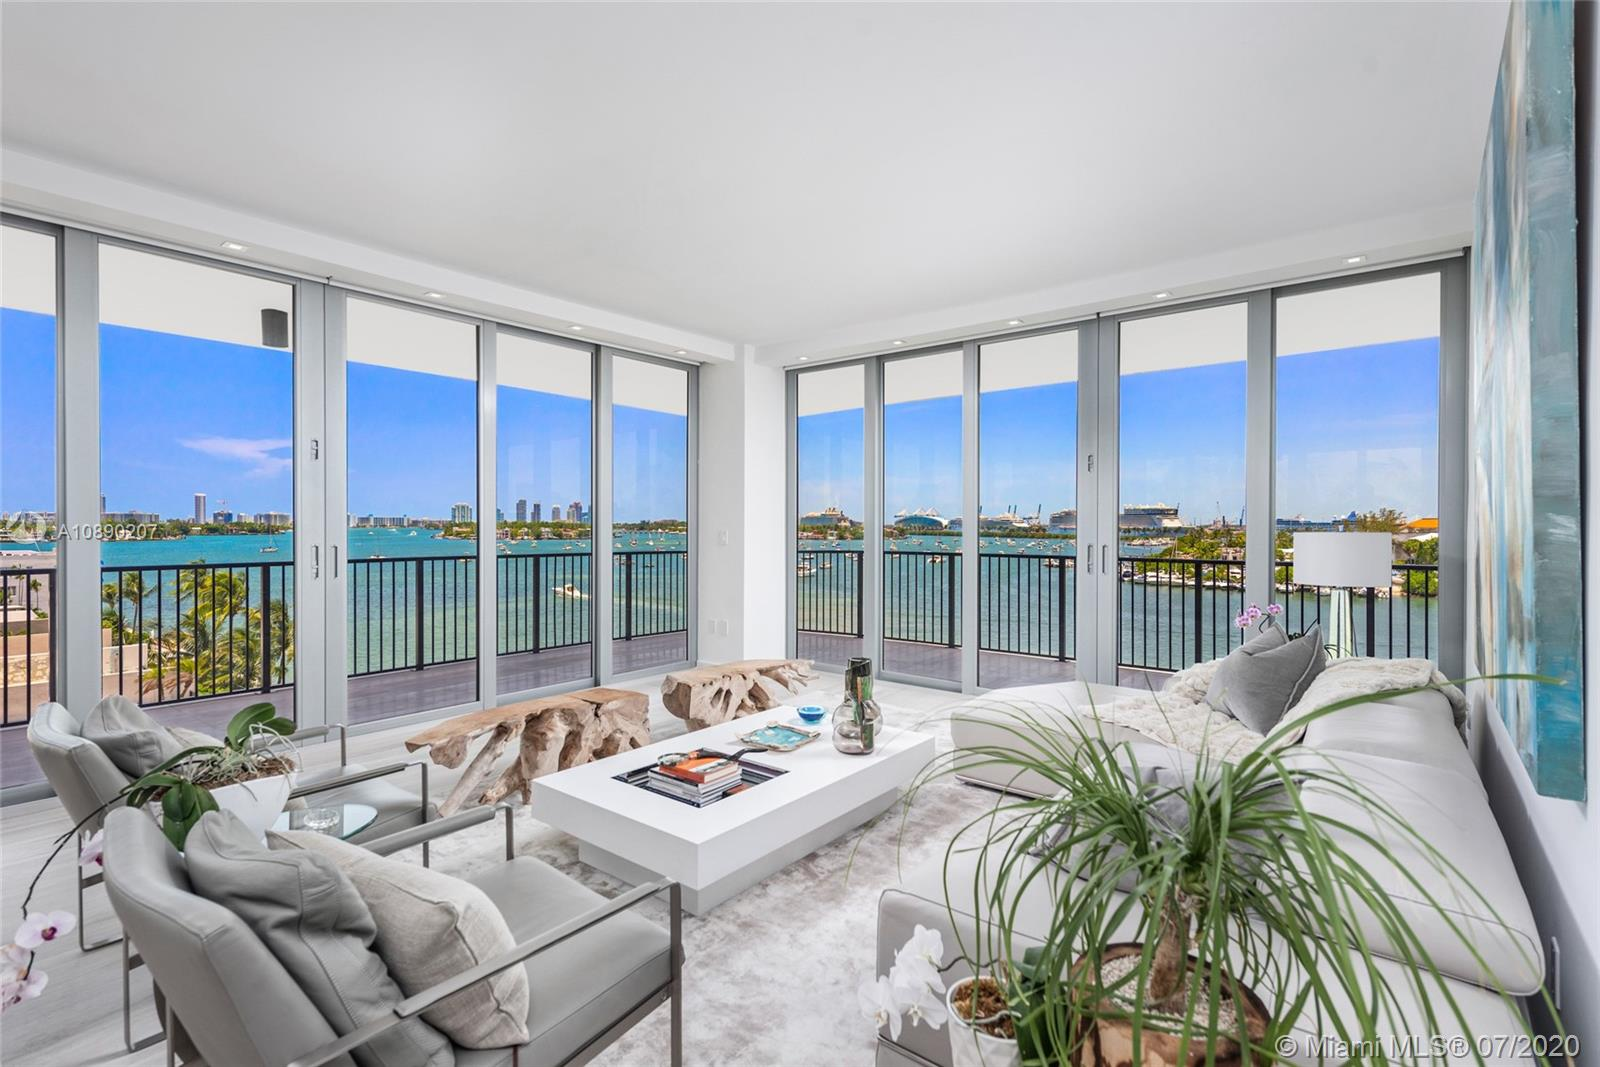 Spectacular totally renovated waterfront residence at the incredible 1000 Venetian. Simply stunning , this home is a design marvel. Double entry doors welcome you into this pristine minimalist residence featuring endless bay, skyline views of Downtown, cruise ships & Miami Beach from 3 ample terrace. High-end finishes & fixtures, all new floors inside and out, new impact glass throughout, so just move in! Customized for those seeking the finest upgrades, the atmosphere is further enhanced by a spacious open floor-plan that includes vast spaces, floor-to-ceiling new IMPACT glass, chef's eat-in kitchen w/ professional appliance suite & oversized Master & remarkable spa-like bath w/ huge shower.. One of the best buildings in Miami, outstanding location & fabulous amenities! World-class views!